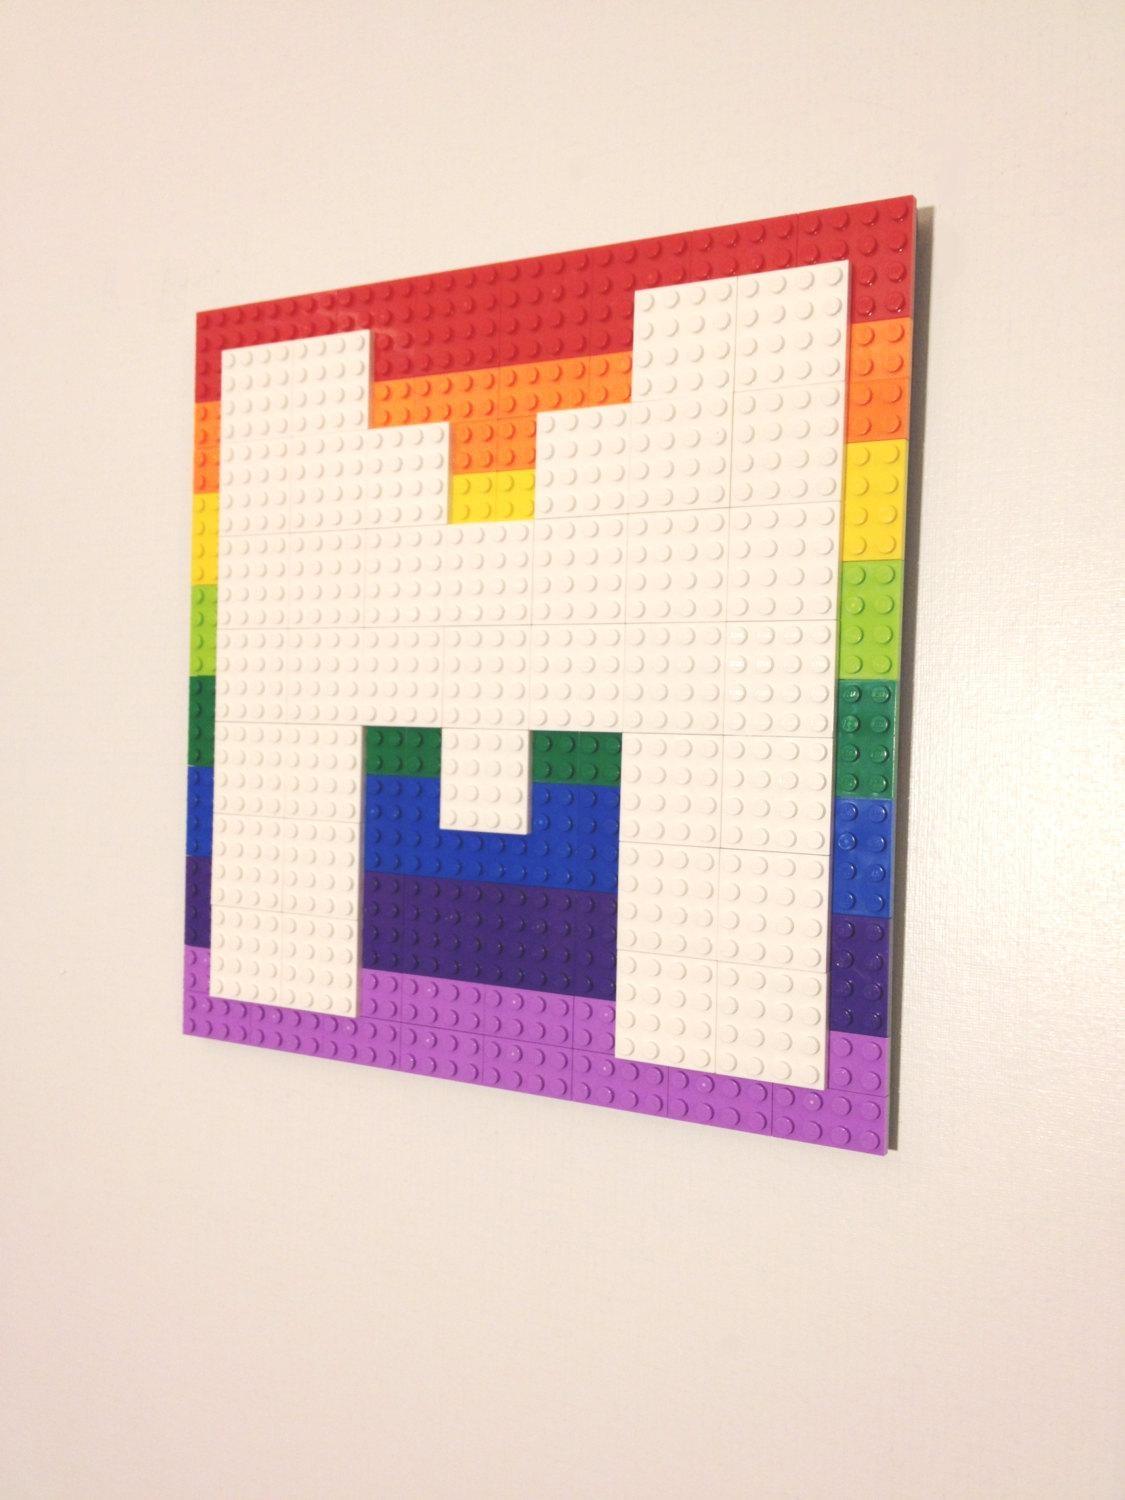 Pixel Letter Lego® Wall Art W/ Background Arcade Font Hanging Regarding Arcade Wall Art (Image 11 of 20)